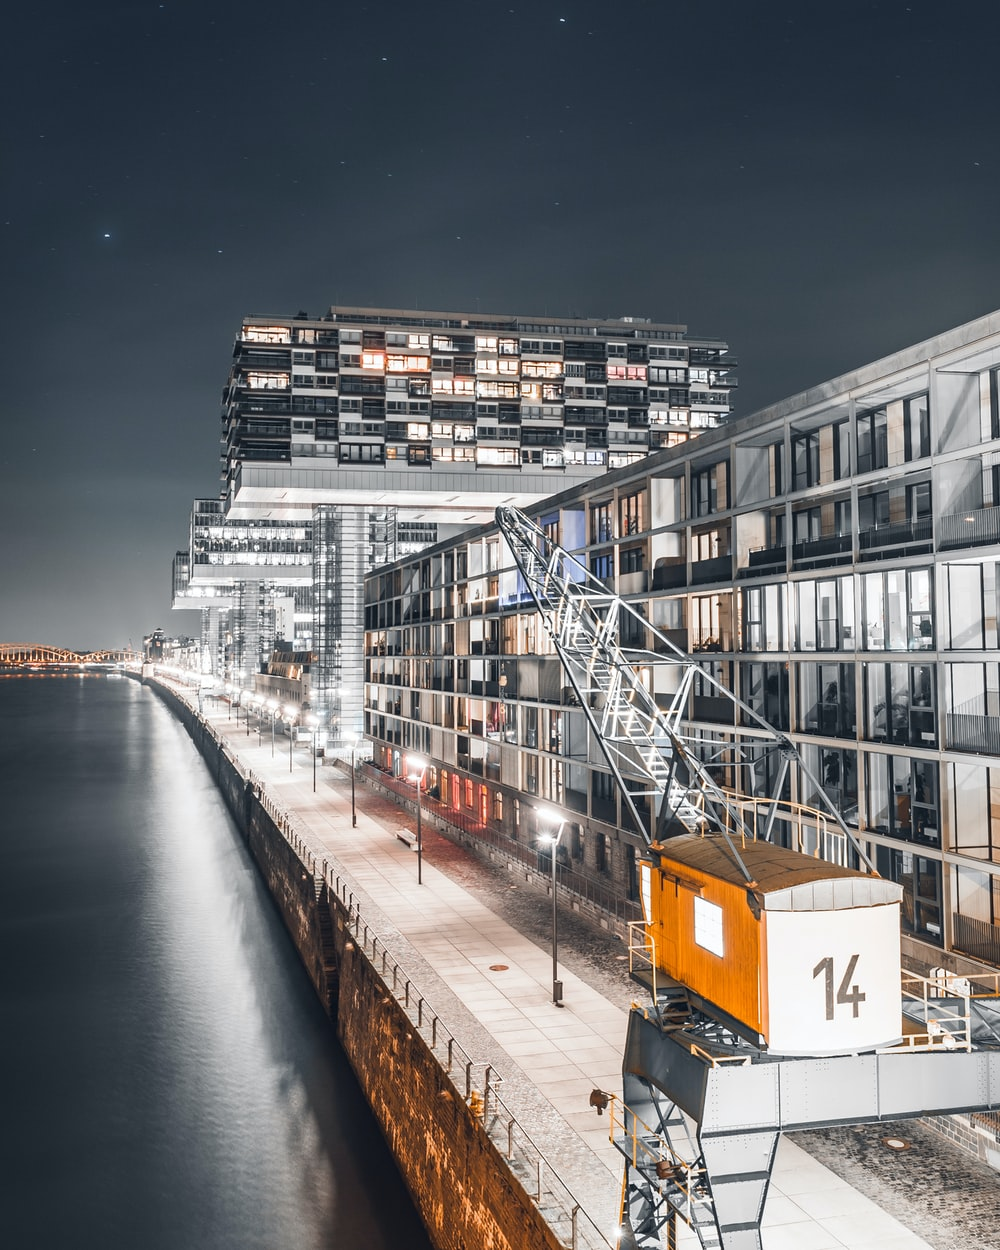 gray glass building beside body of water during night time